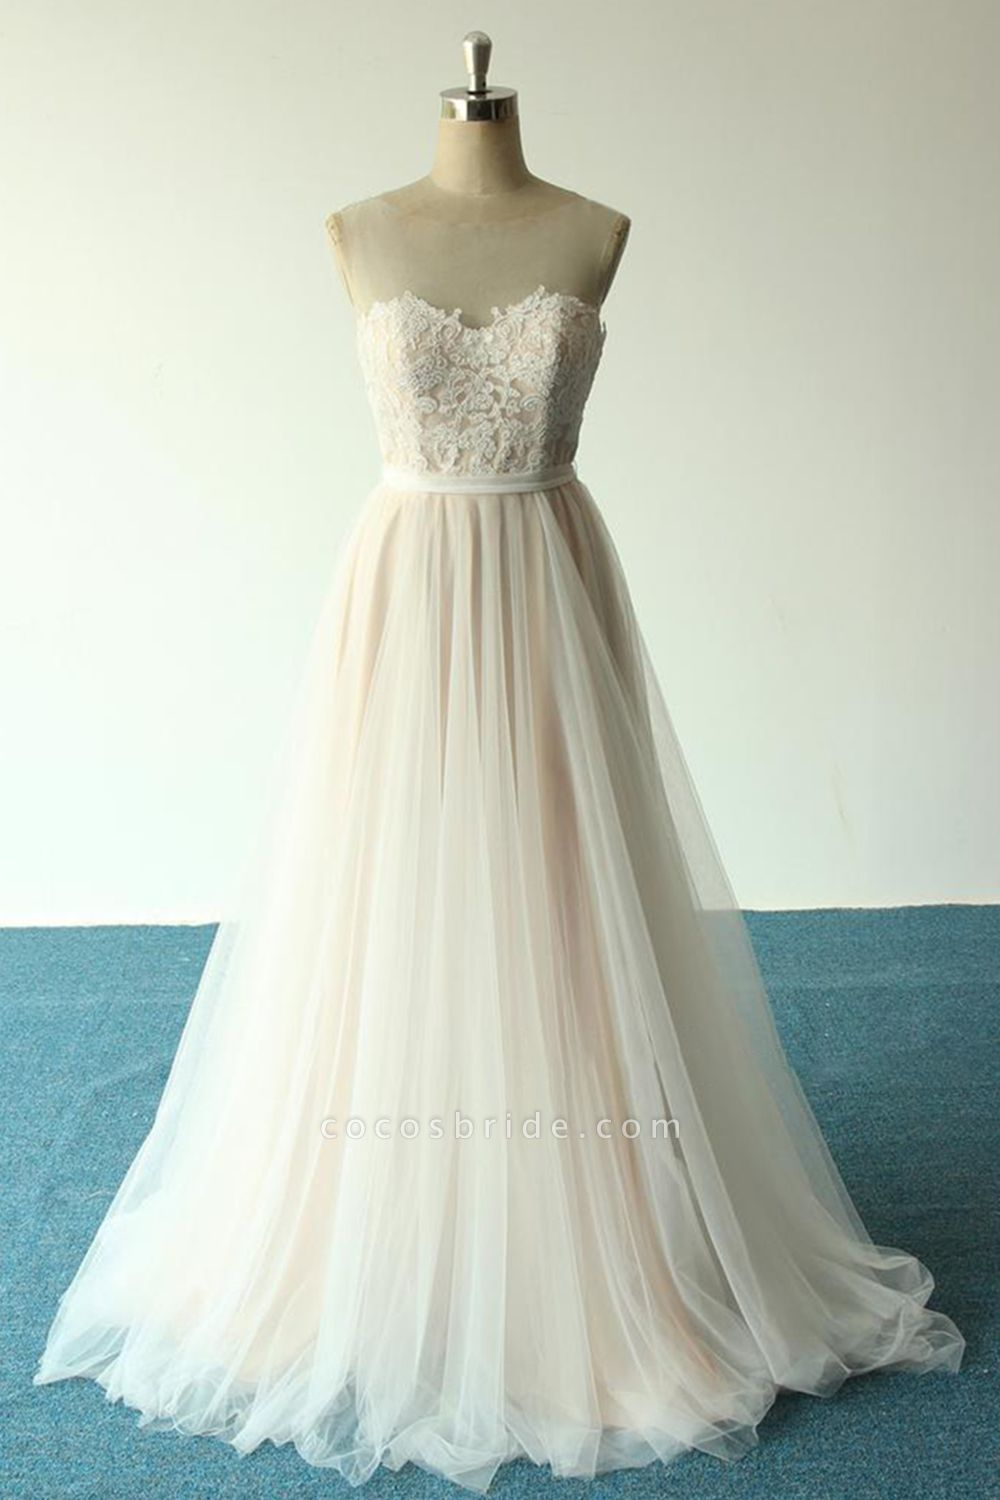 Awesome Illusion Lace Tulle A-line Wedding Dress